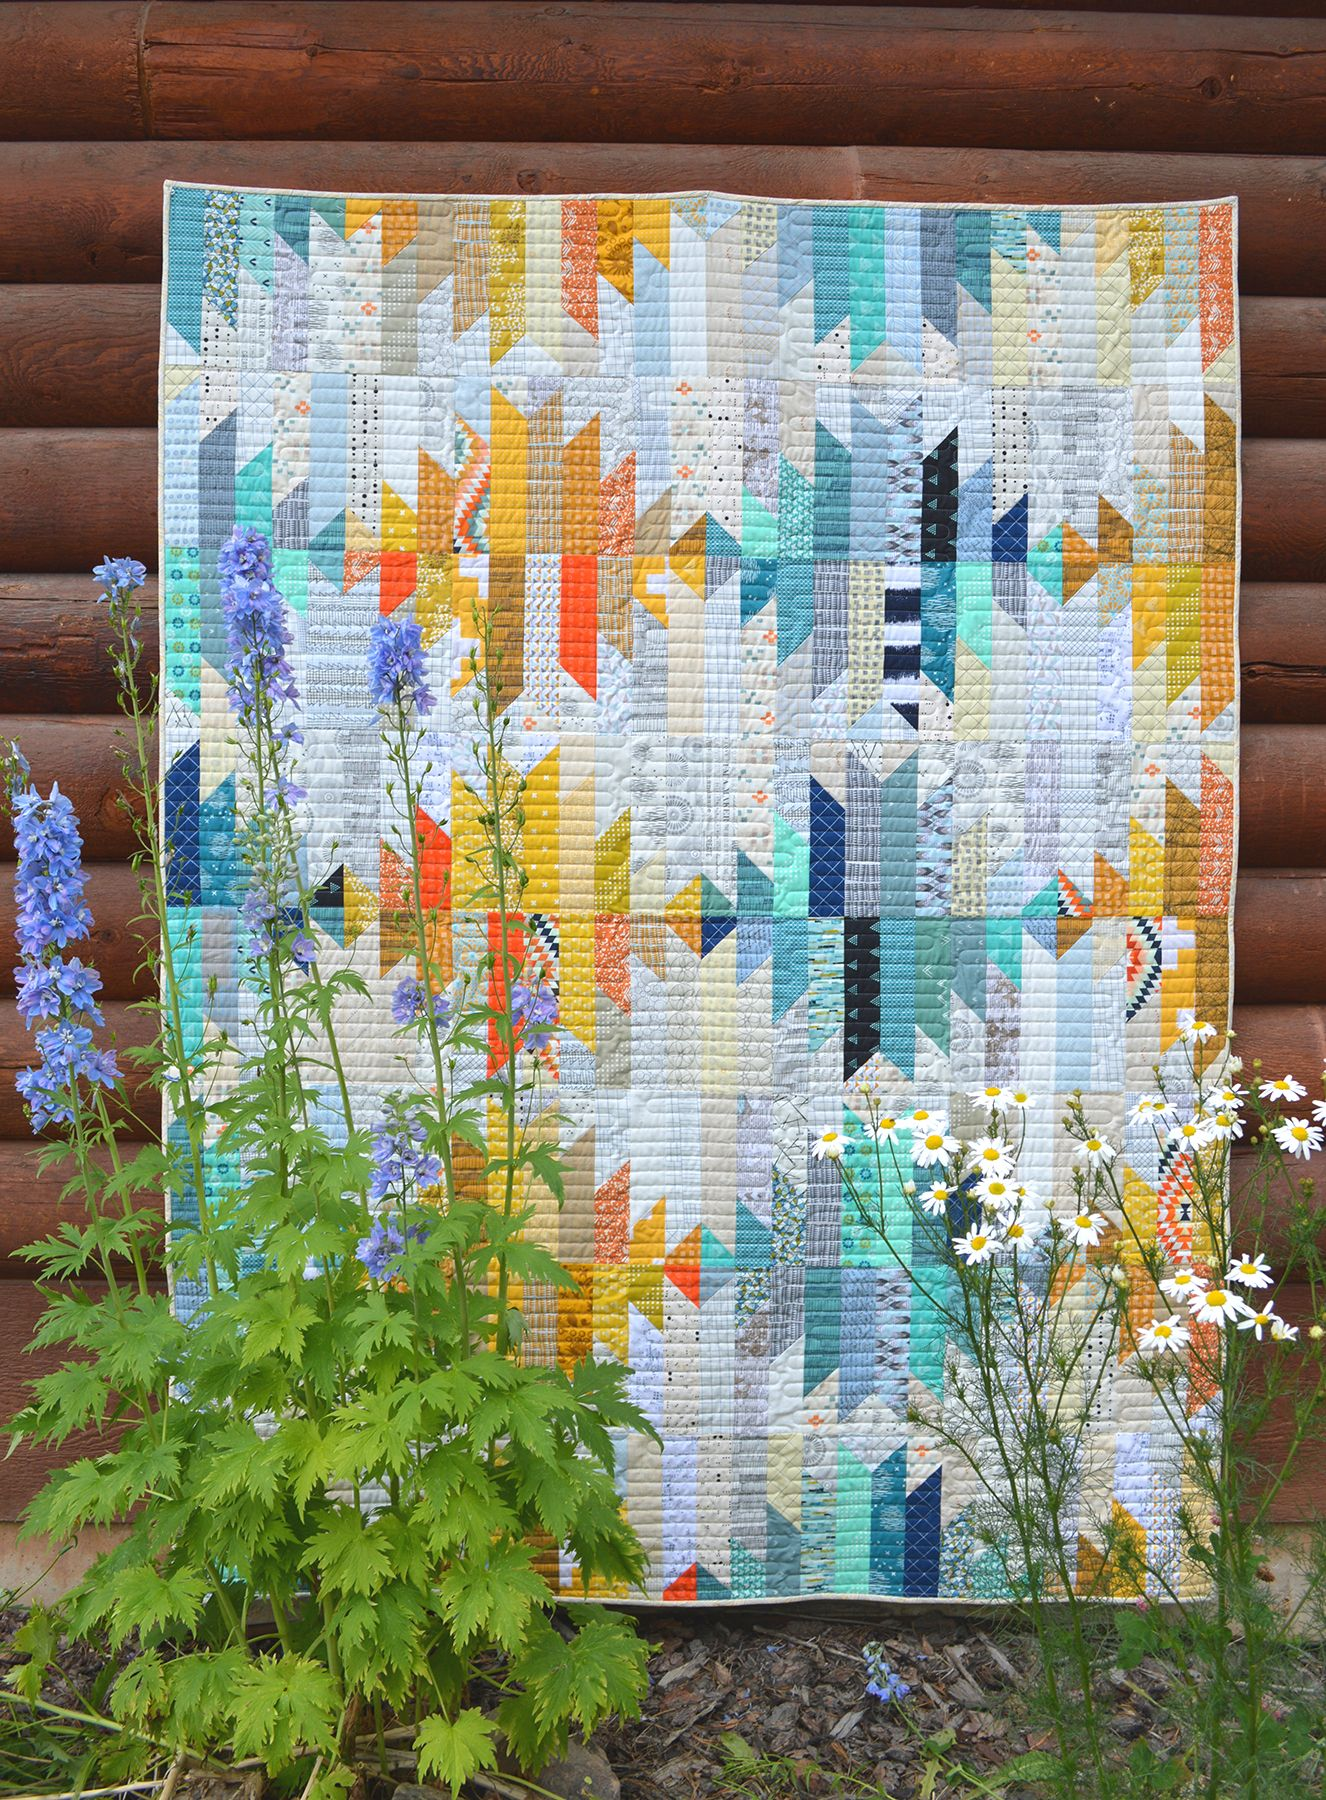 wavelength quilt by Sharon McConnell in American Patchwork and ... : american patchwork quilting magazine - Adamdwight.com